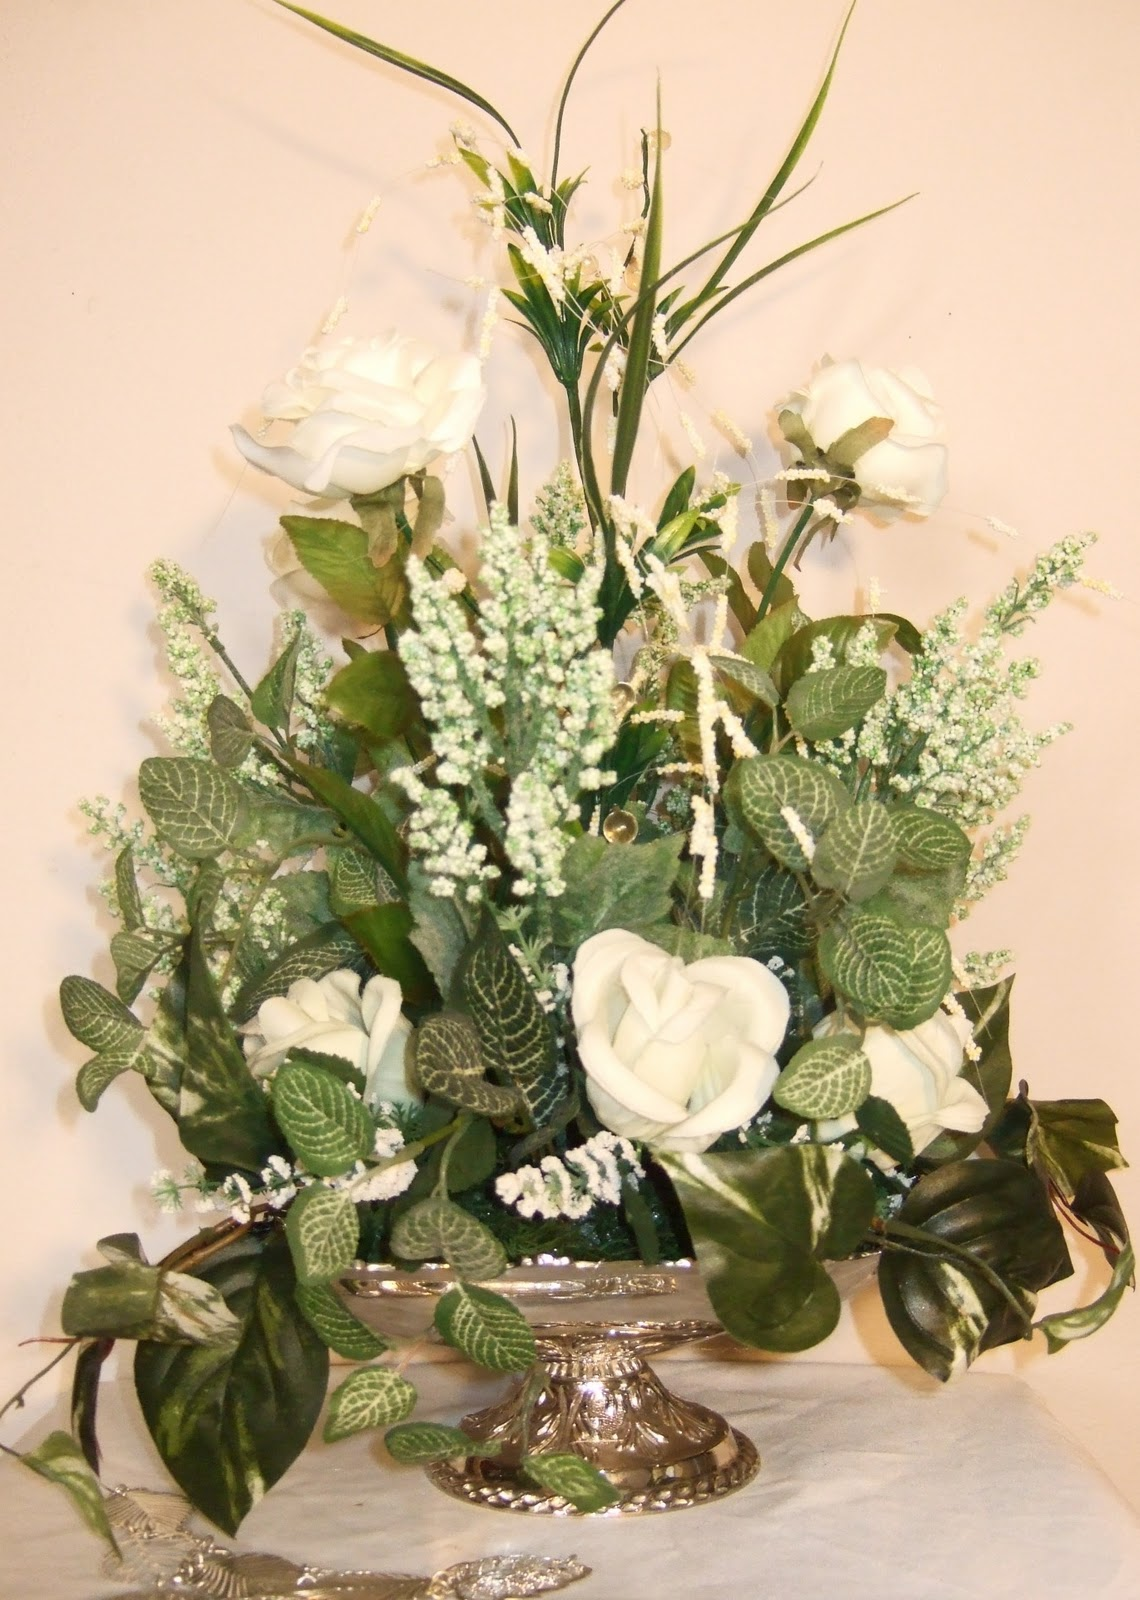 Ana silk flowers pictures silk flowers white for Ideas for floral arrangements